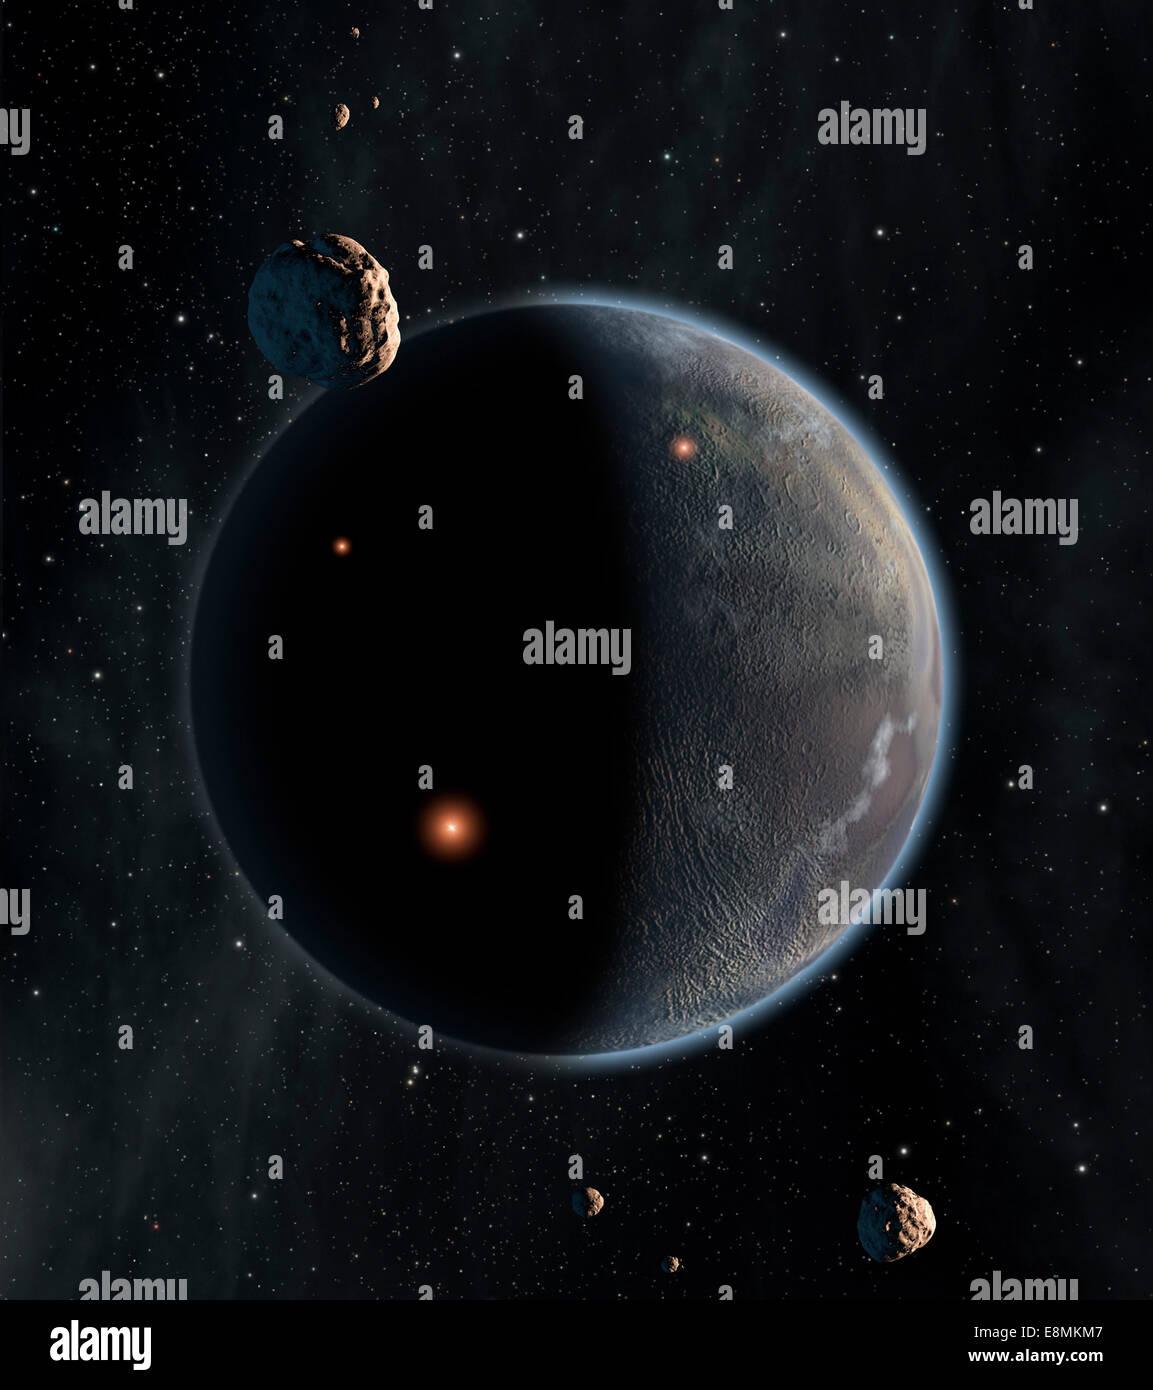 Artist's concept of an Earth-like planet rich in carbon and dry. Chances are low that life as we know it, which - Stock Image